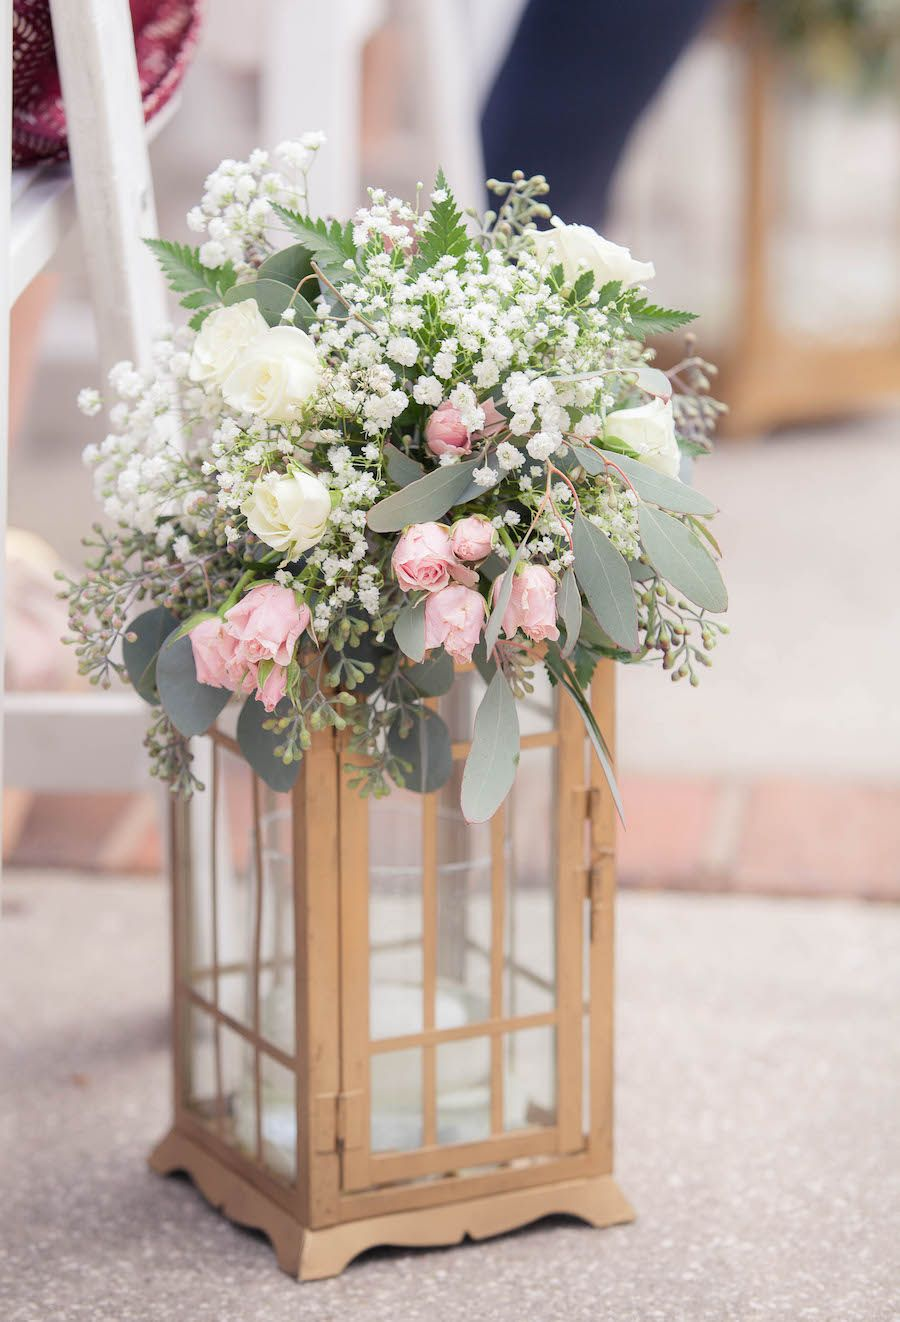 White, Ivory and Light Pink Centerpiece Flowers in Gold